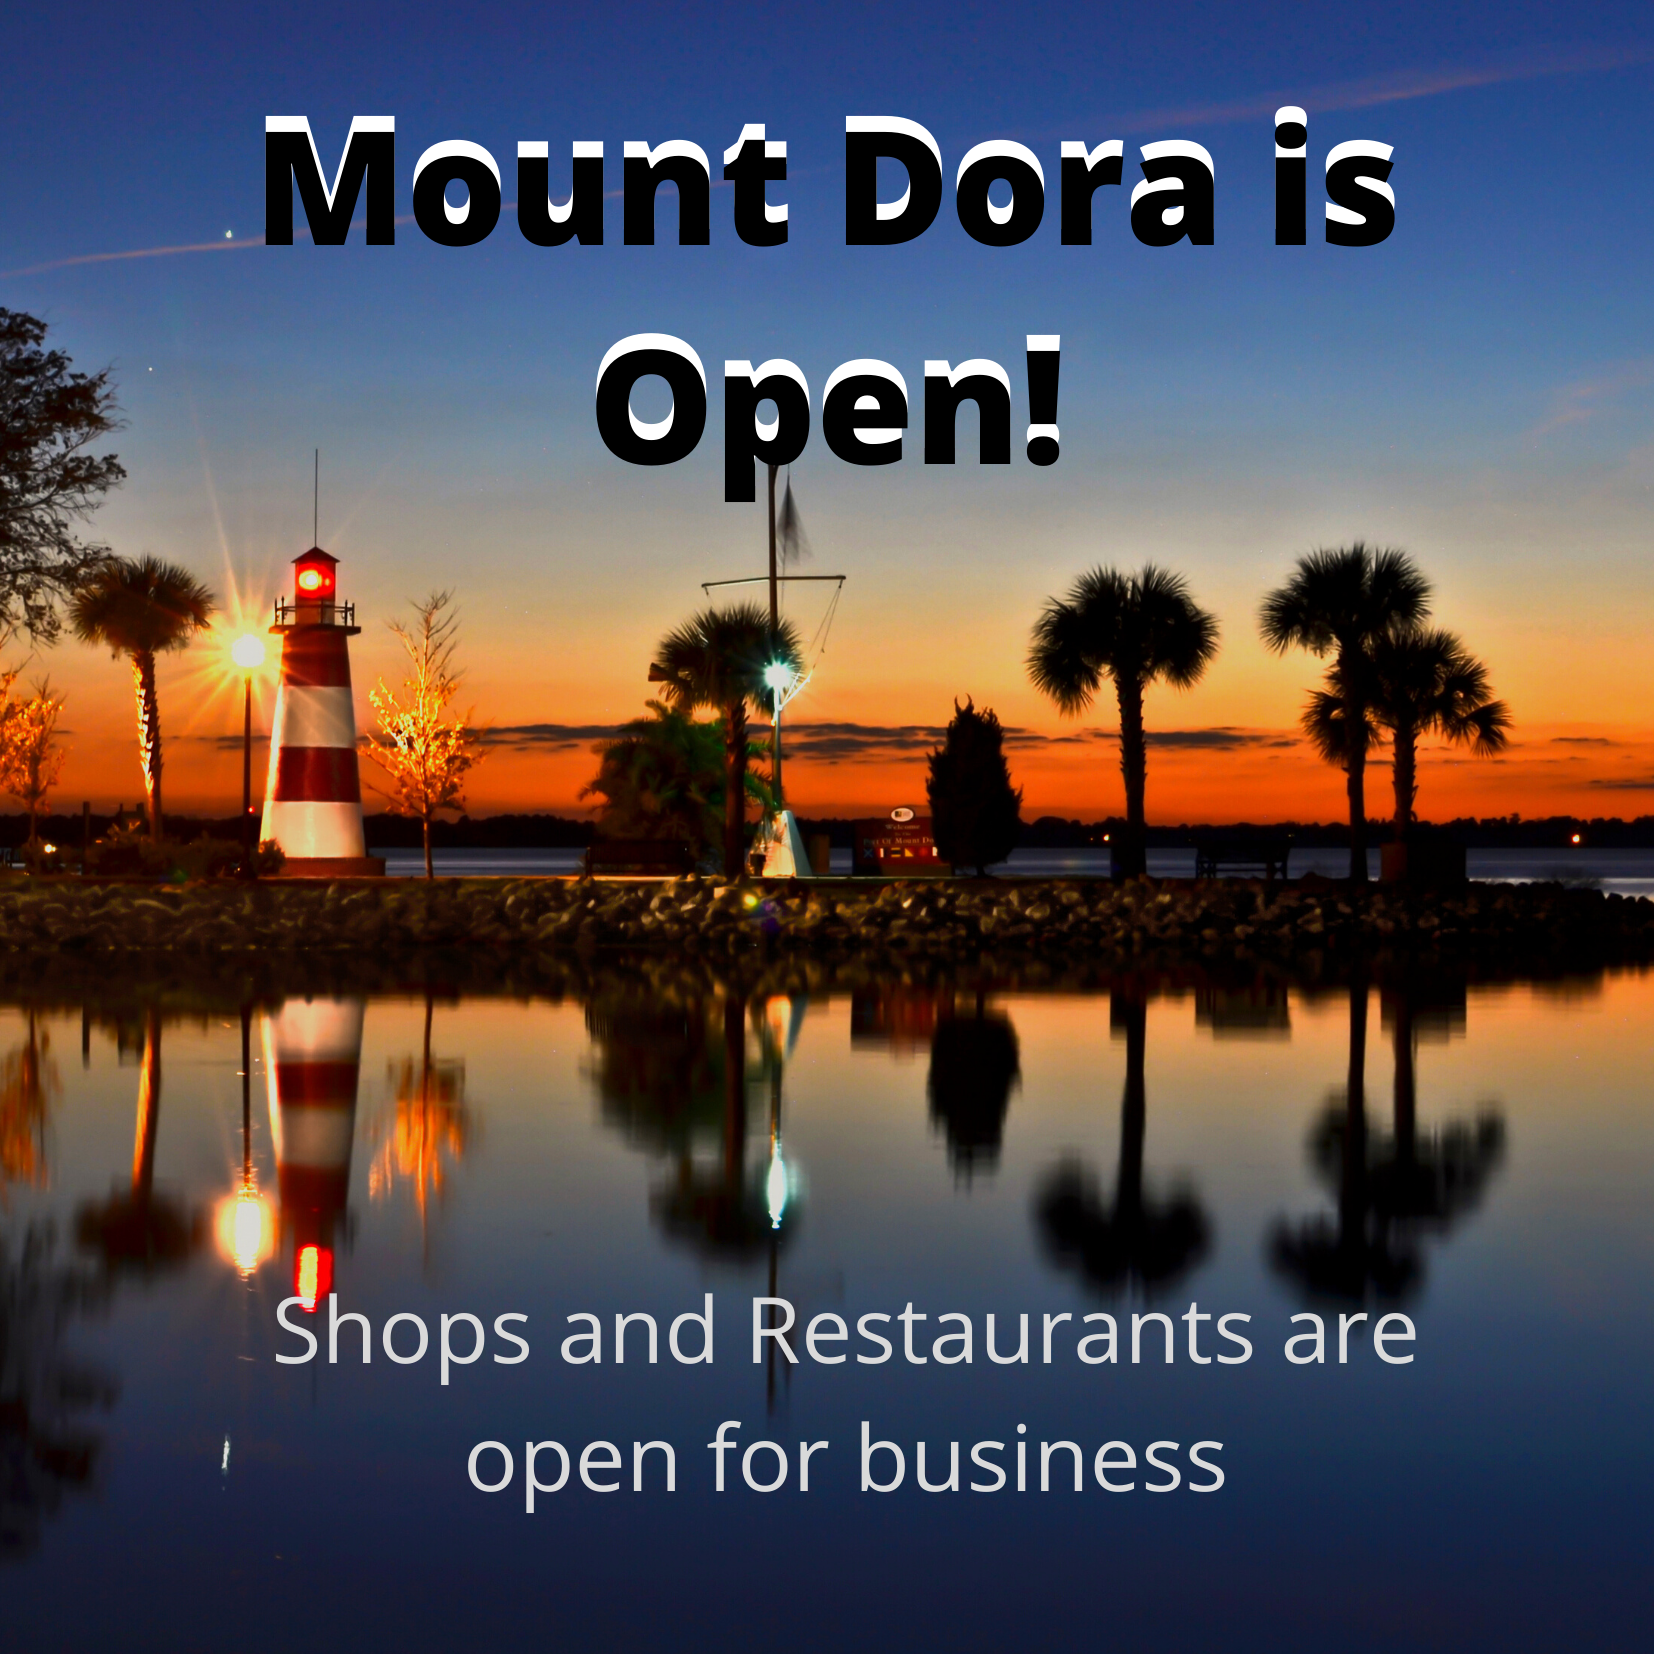 Mount Dora is Open!